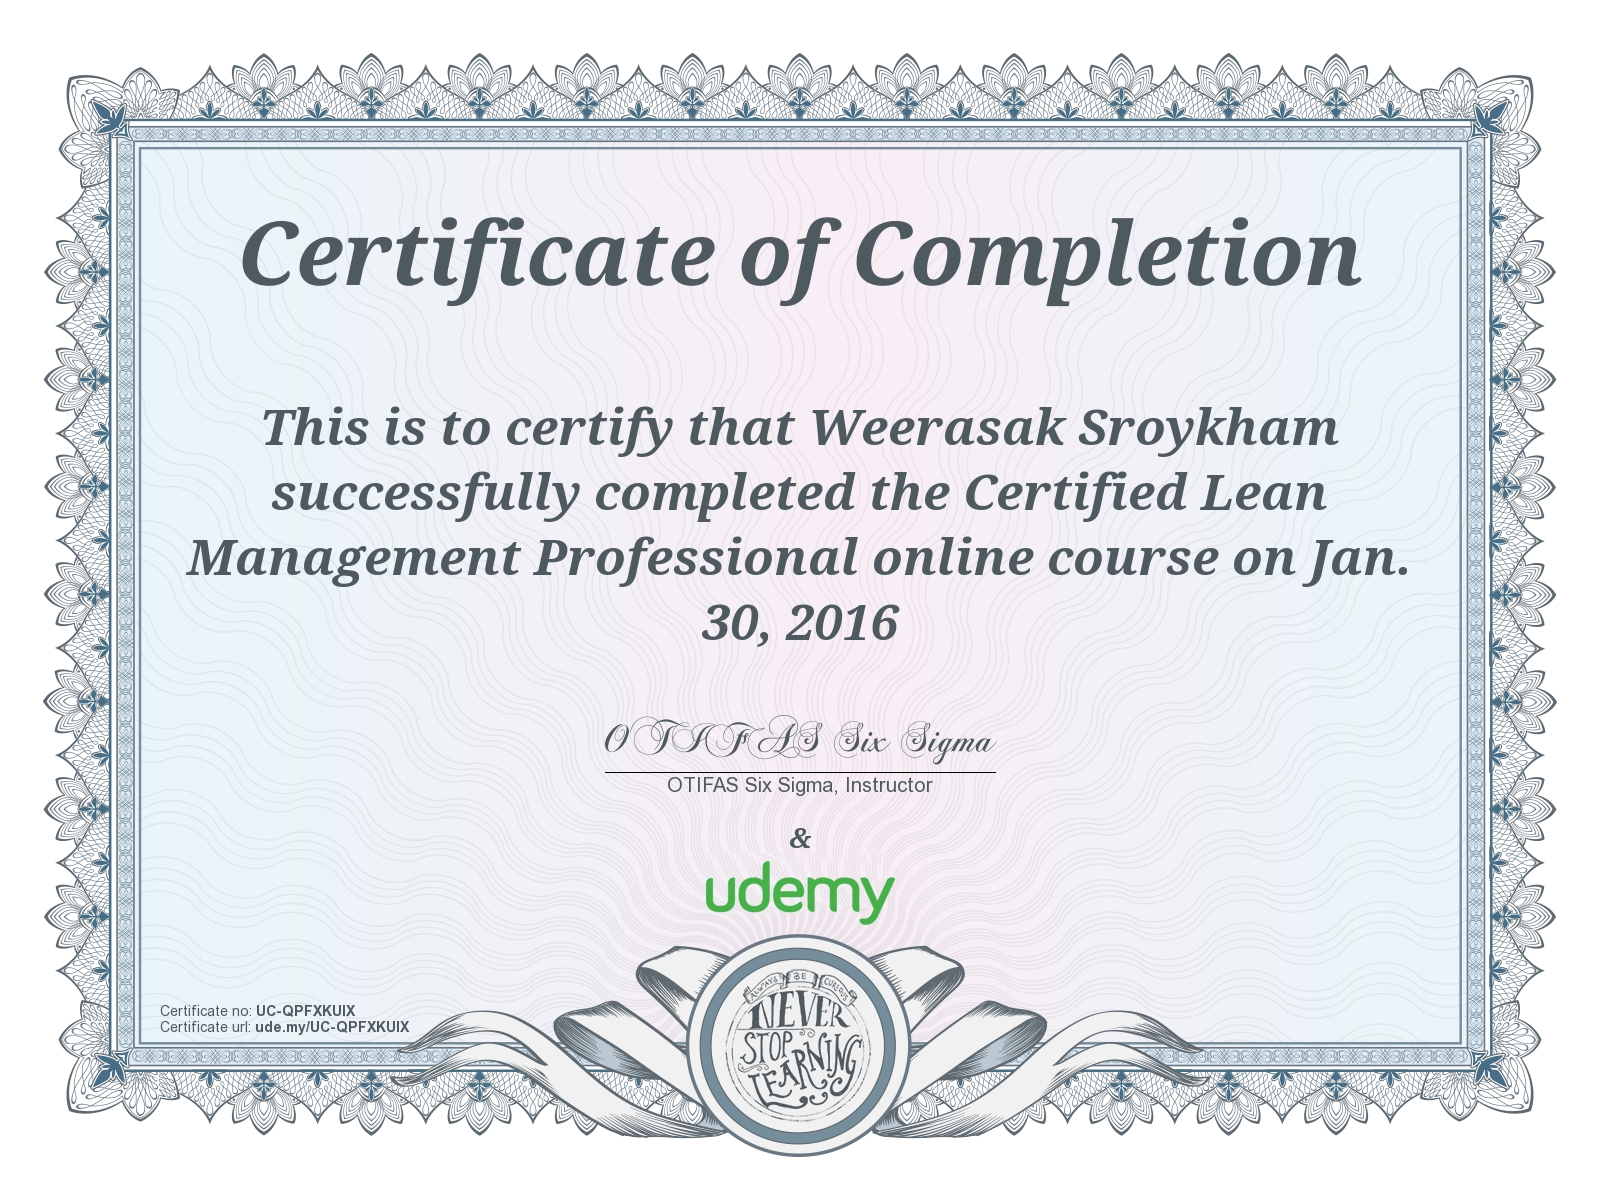 Course Certified Lean Management Professional On Jan 30 2016 As